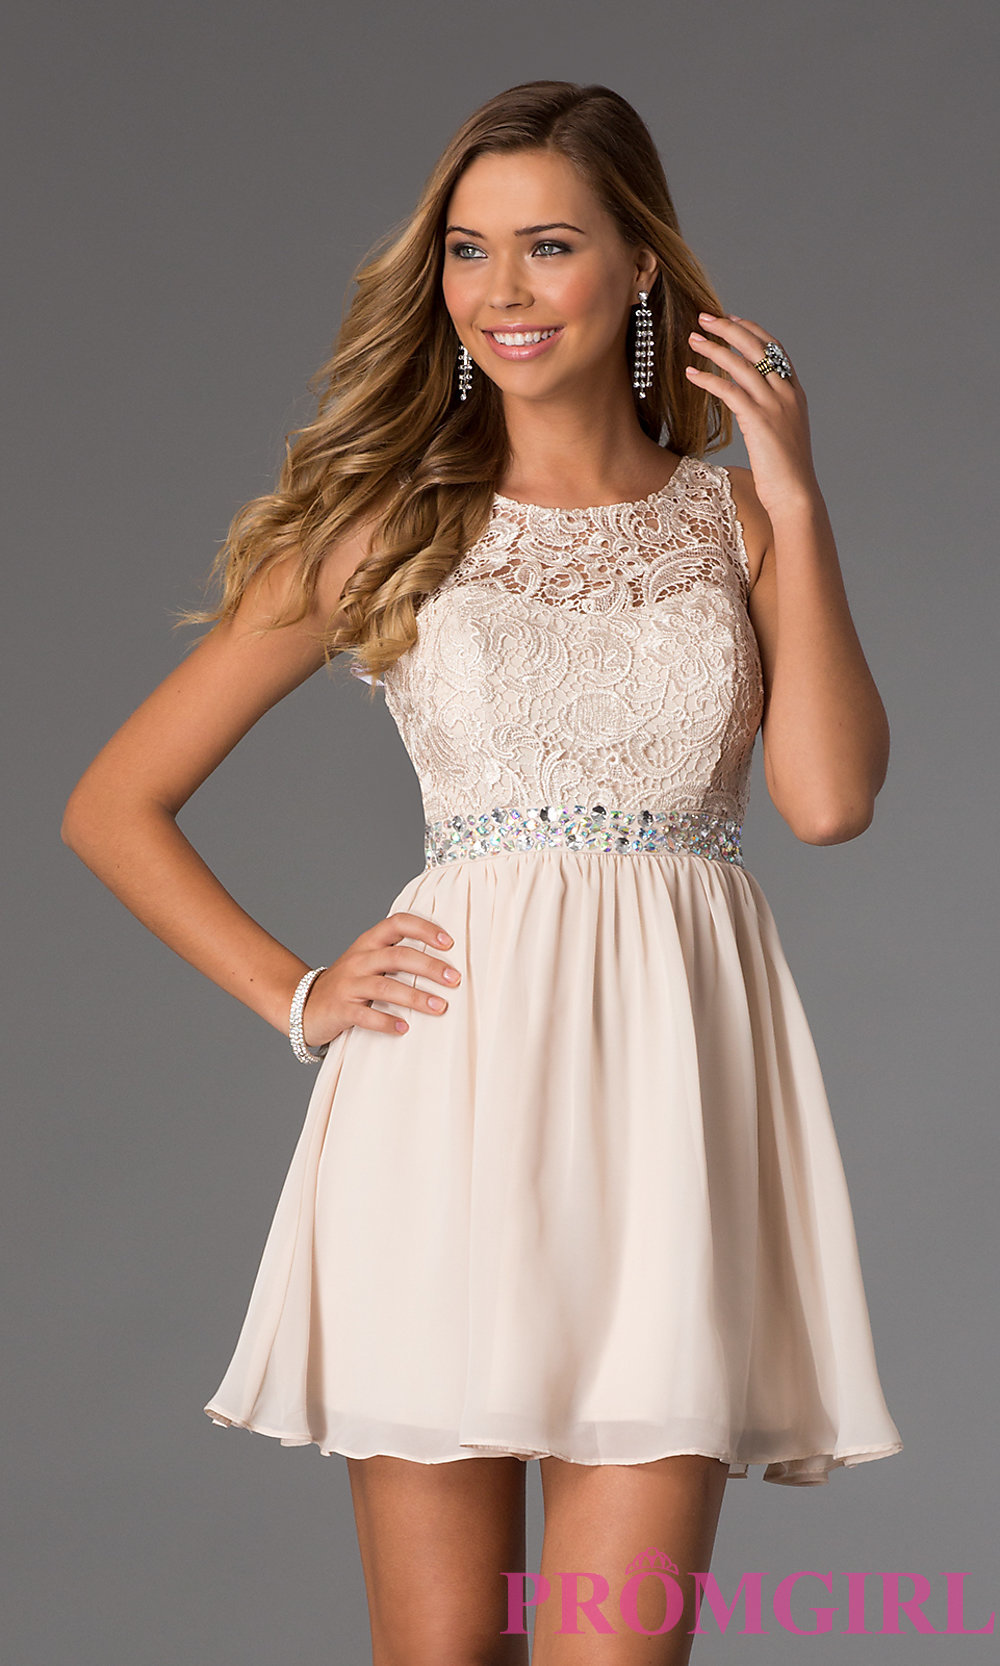 Sleeveless Dress with Lace Bodice